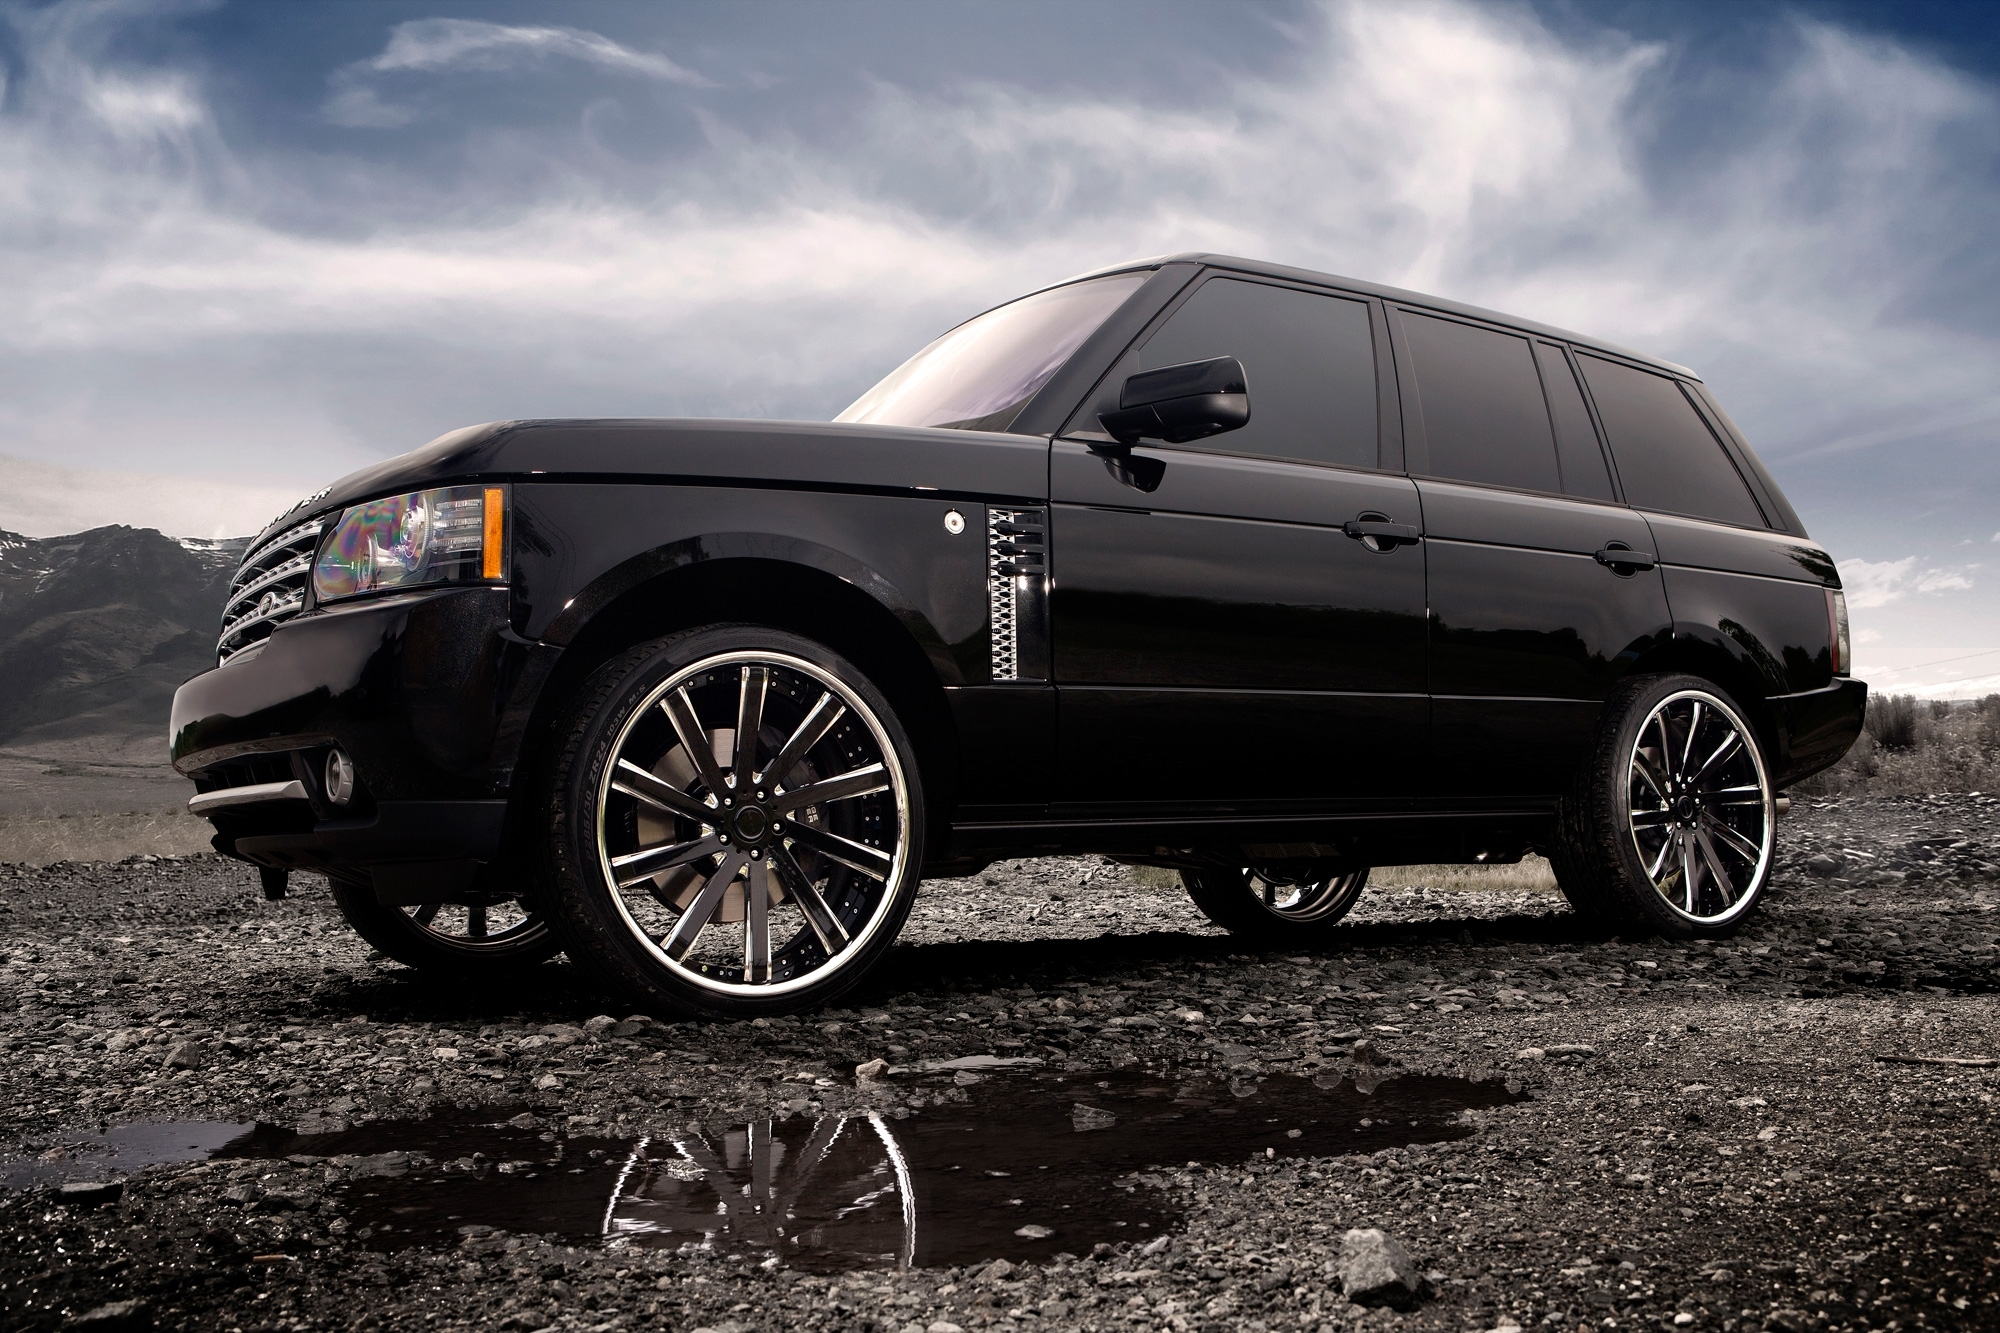 115496 Screensavers and Wallpapers Auto for phone. Download Auto, Tuning, Clouds, Range Rover, Land Rover, Cars, Disks, Drives pictures for free